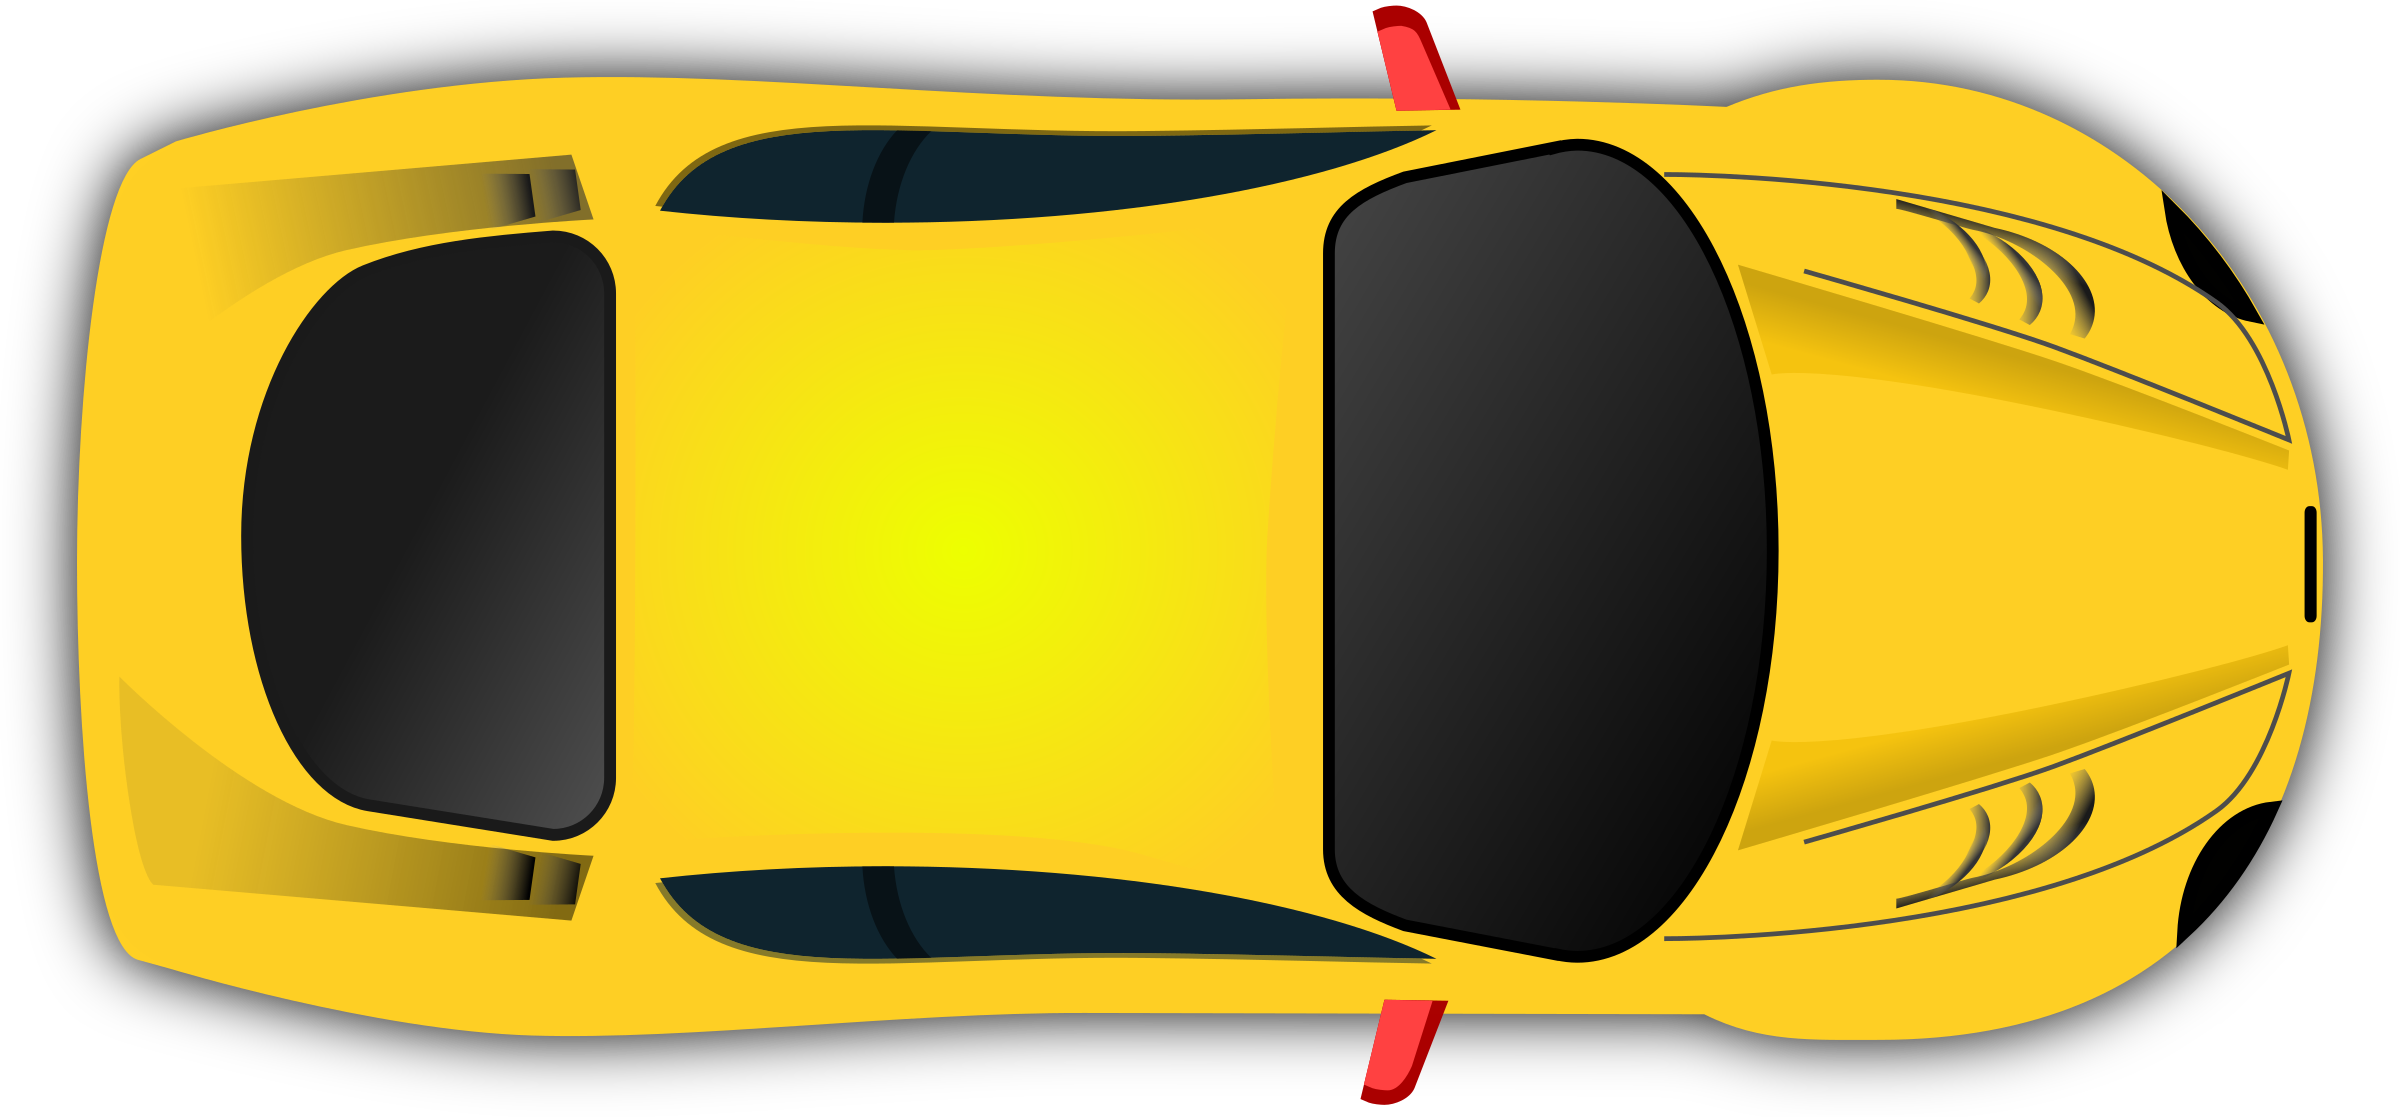 Car top view png. Remix racing game icons